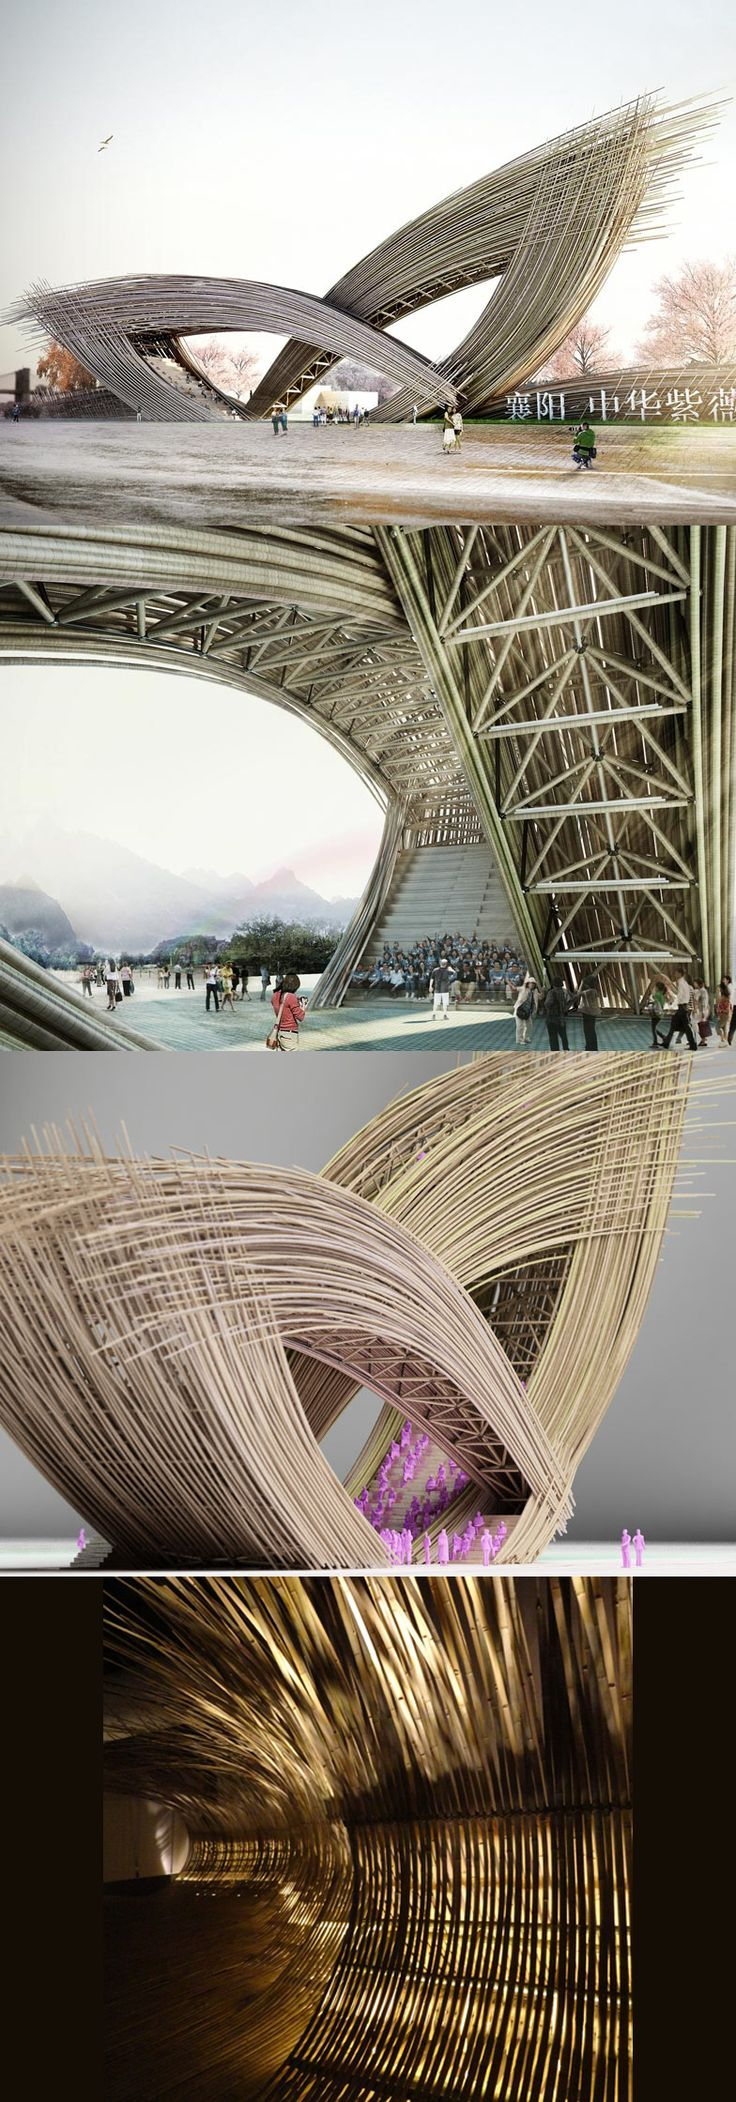 This sculptural bamboo entrance designed for a Chinese flower garden was the first-ever project by architecture studio Penda, who this week unveiled a concept for a modular bamboo hotel